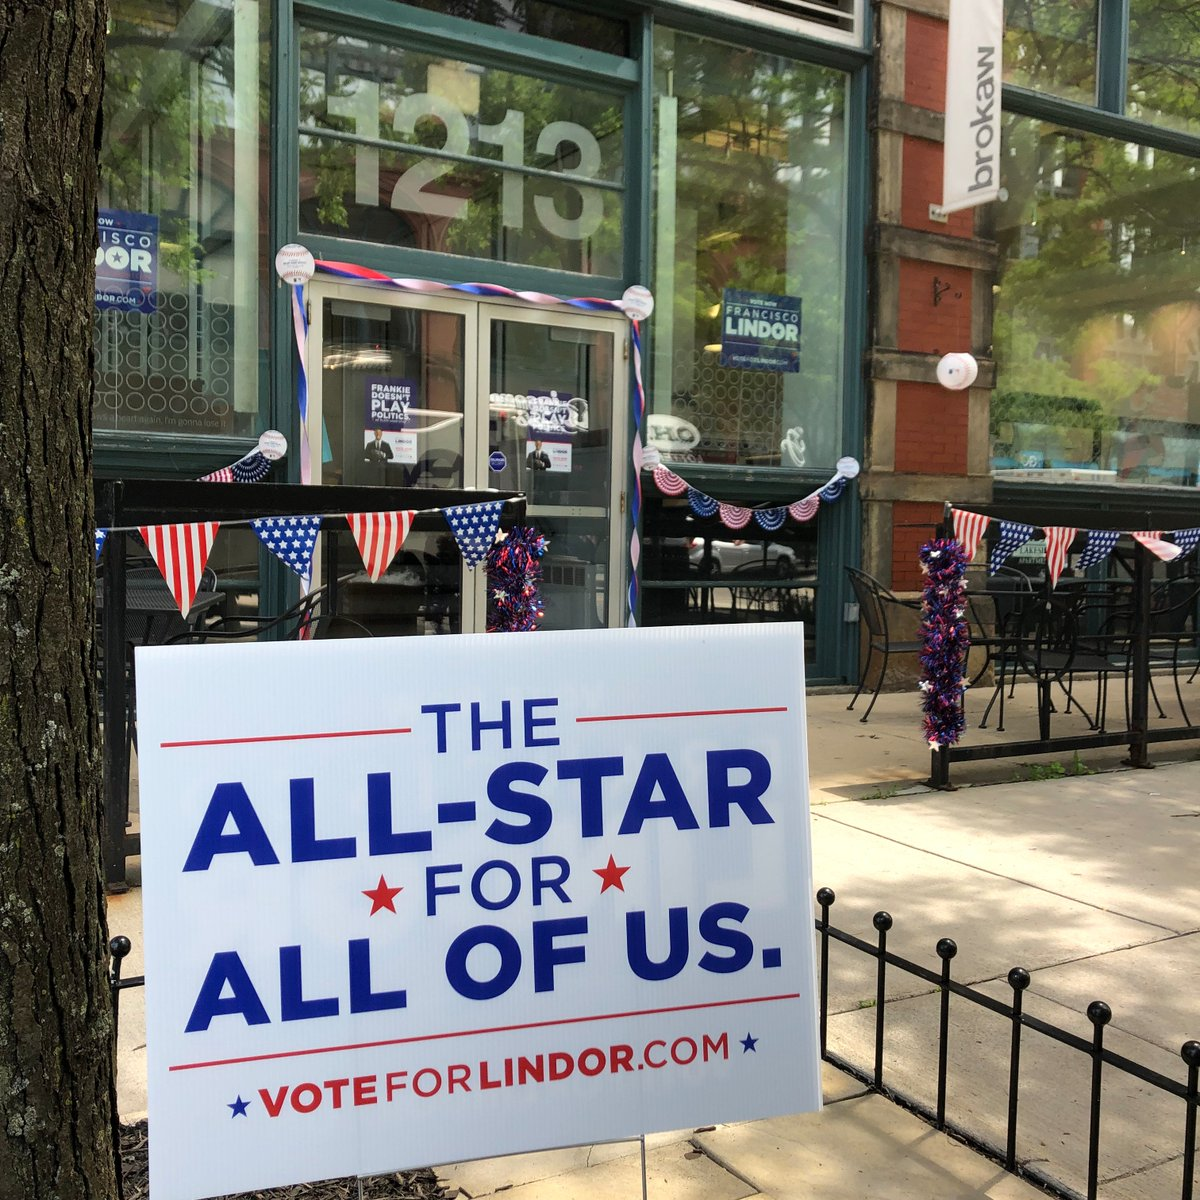 Cleveland deserves an All-Star like Francisco Lindor – and now is the time to make sure it happens! First 40 fans to stop by the corner of W. 6th and Lakeside Ave. at 4 pm will take home their own Vote @Lindor12BC yard sign. #VoteLindor